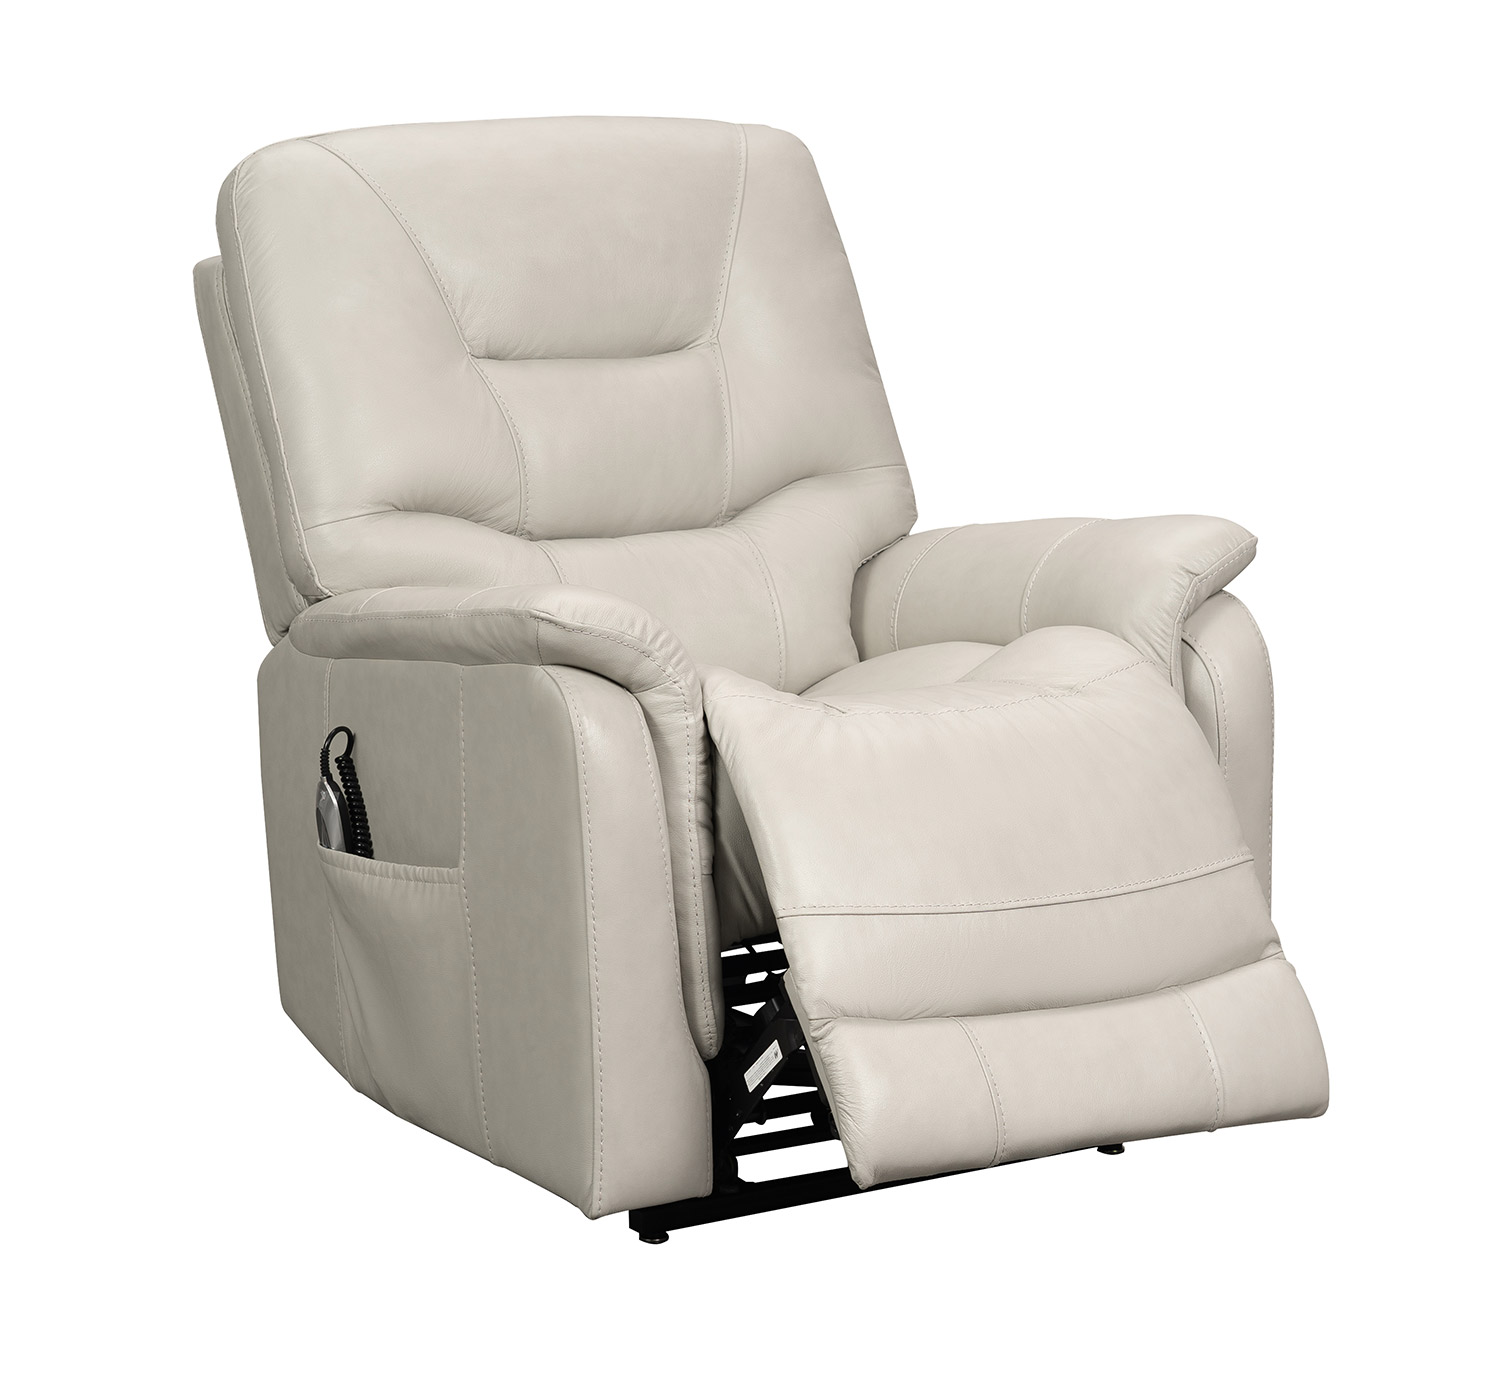 Barcalounger Lorence Lift Chair Recliner with Power Head Rest - Venzia Cream/Leather Match